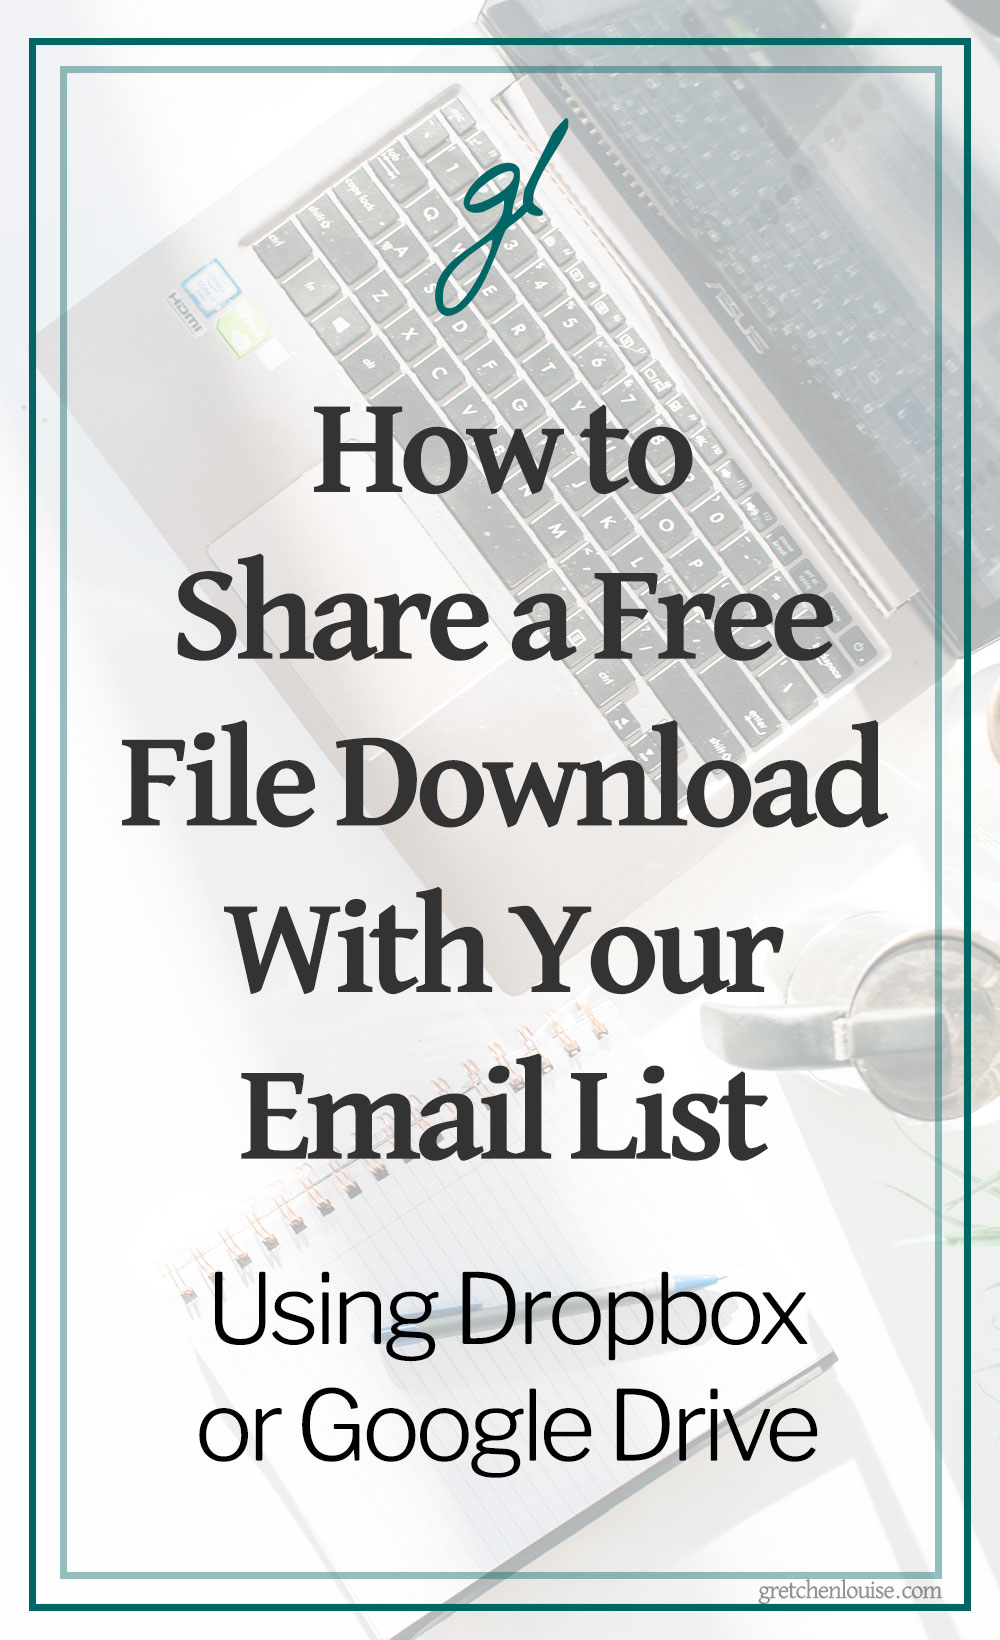 You've crafted the most helpful free printable to give to your subscribers. You've written the most compelling email that will make your subscribers want to download and use your printable--and then tell all their friends to go sign up for your email list, too. But now you're stuck. There's no way to upload or attach a file in your email campaign. via @GretLouise